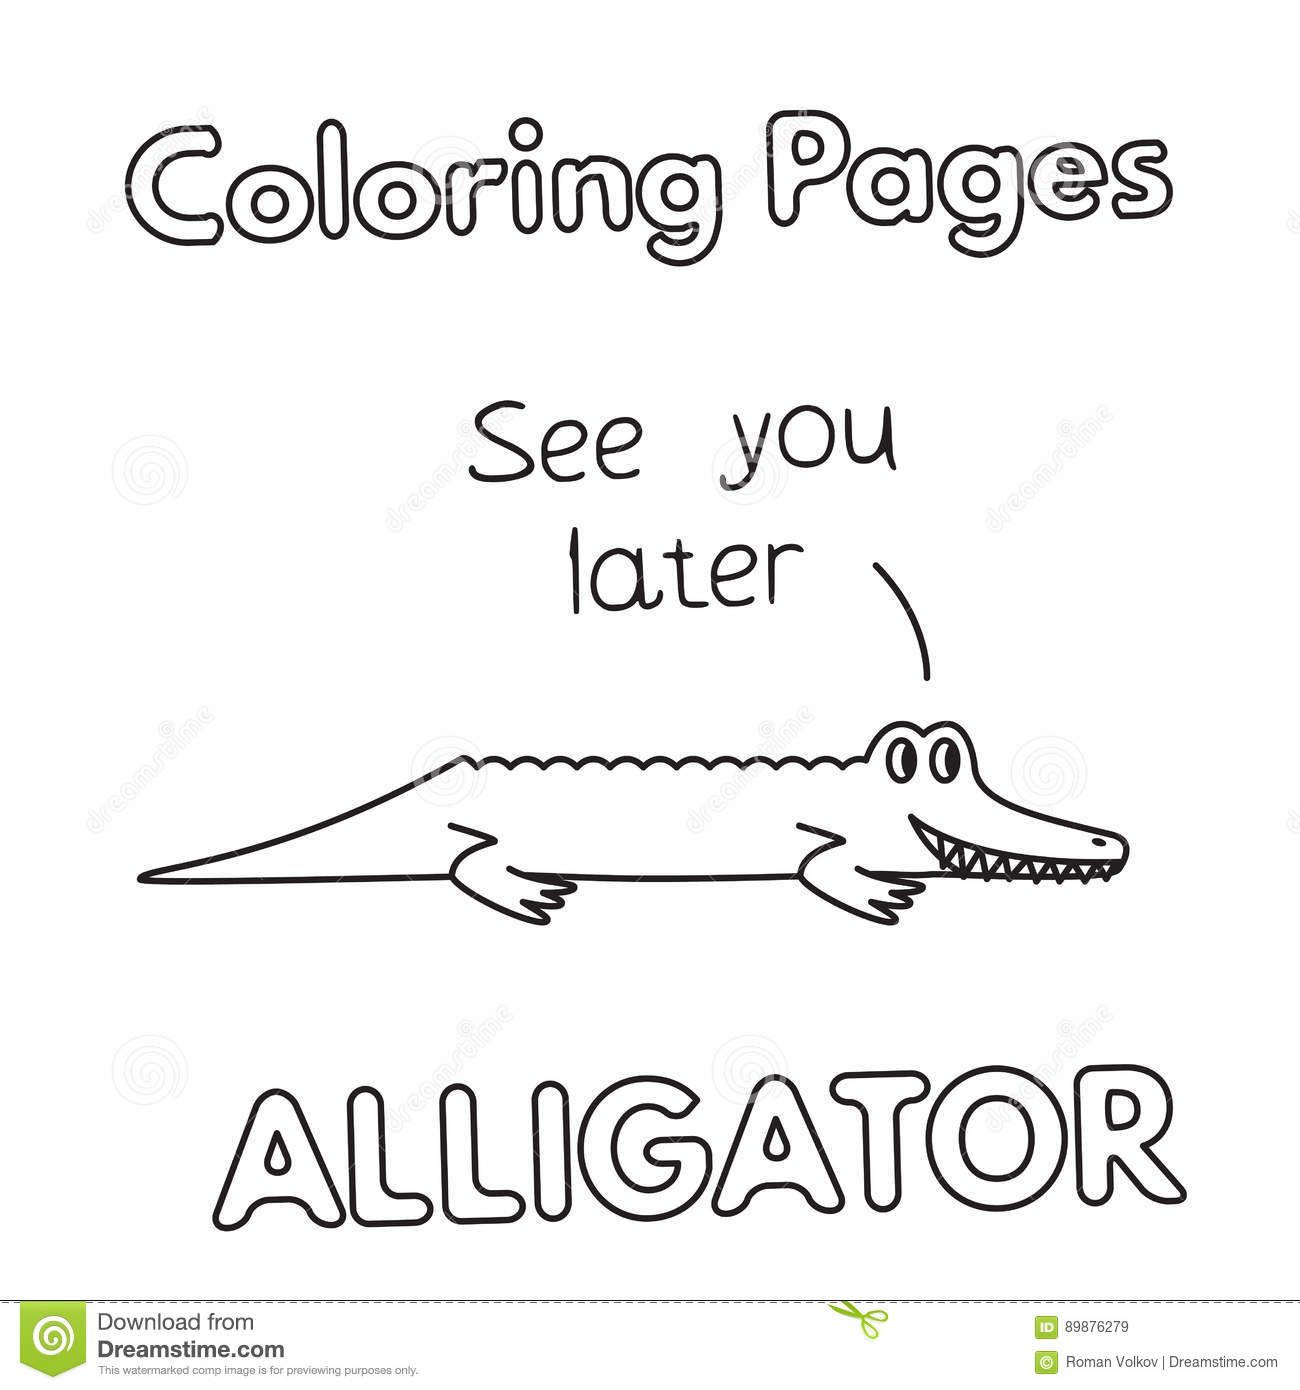 Alligator Coloring Pages - StPeteFest.org   1390x1300